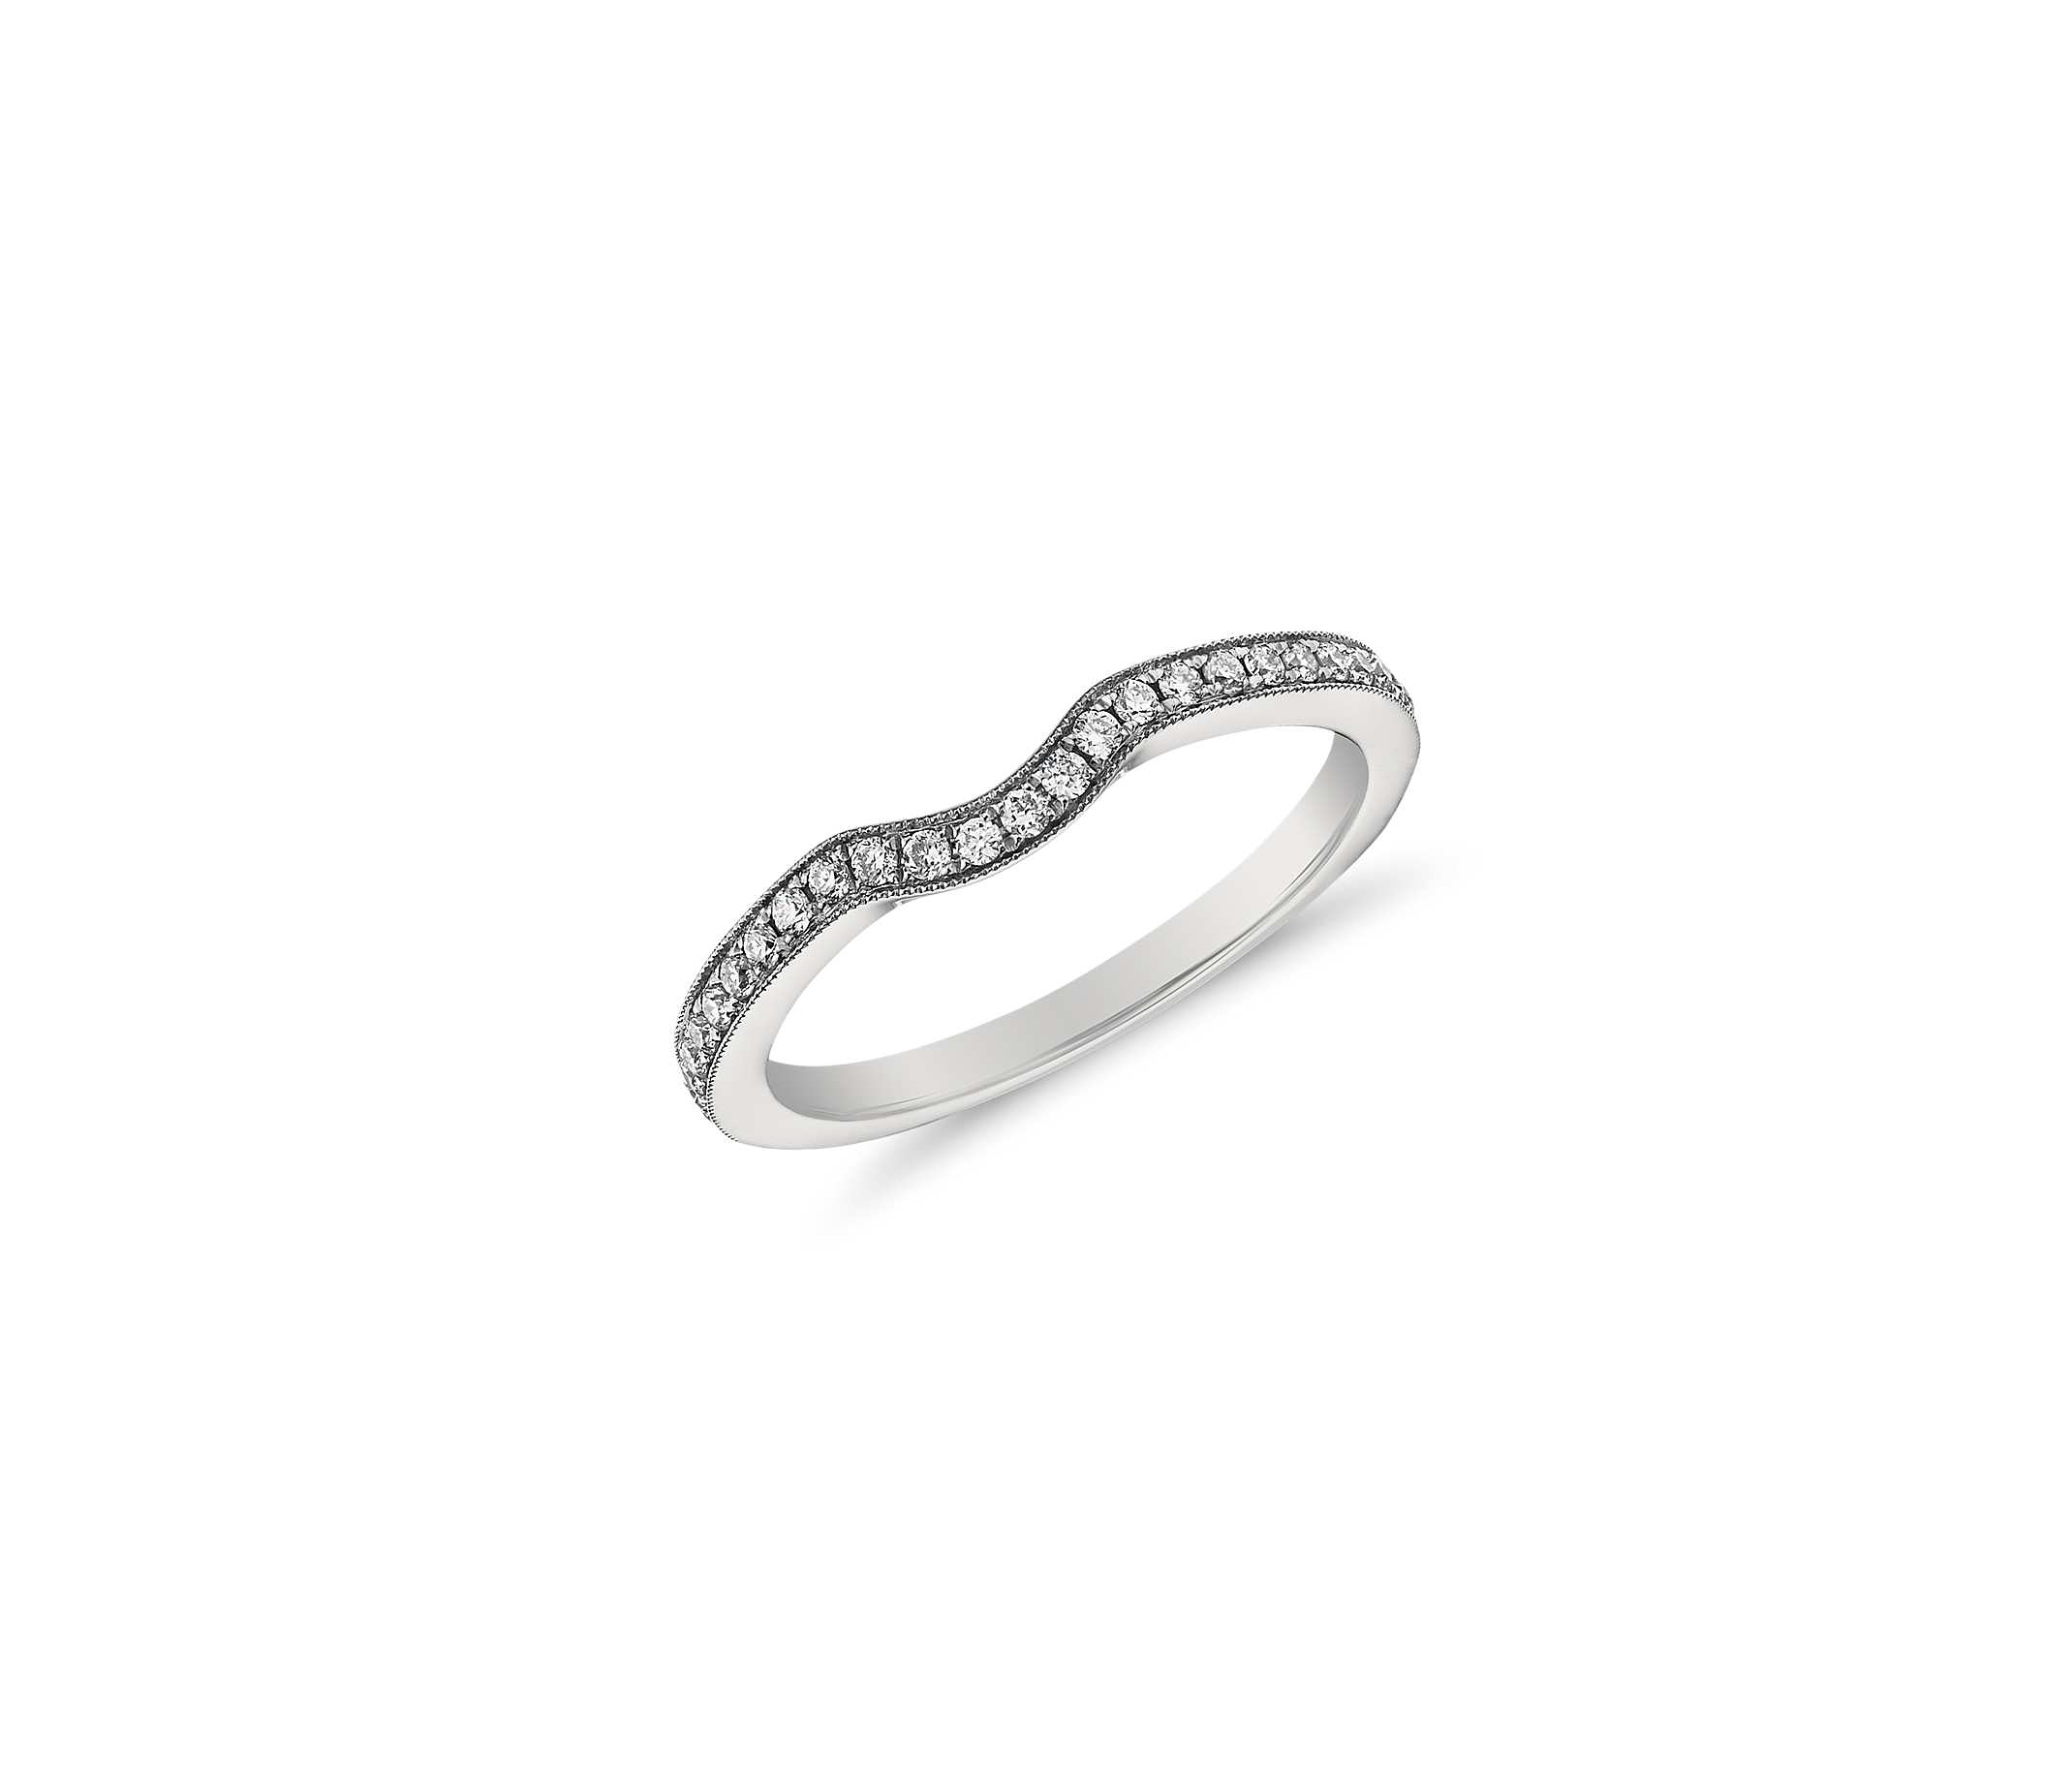 Wedding Bands That Pair Perfectly With Unique Engagement With Regard To Recent Wave Diamond Wedding Bands With Pavé (View 16 of 25)